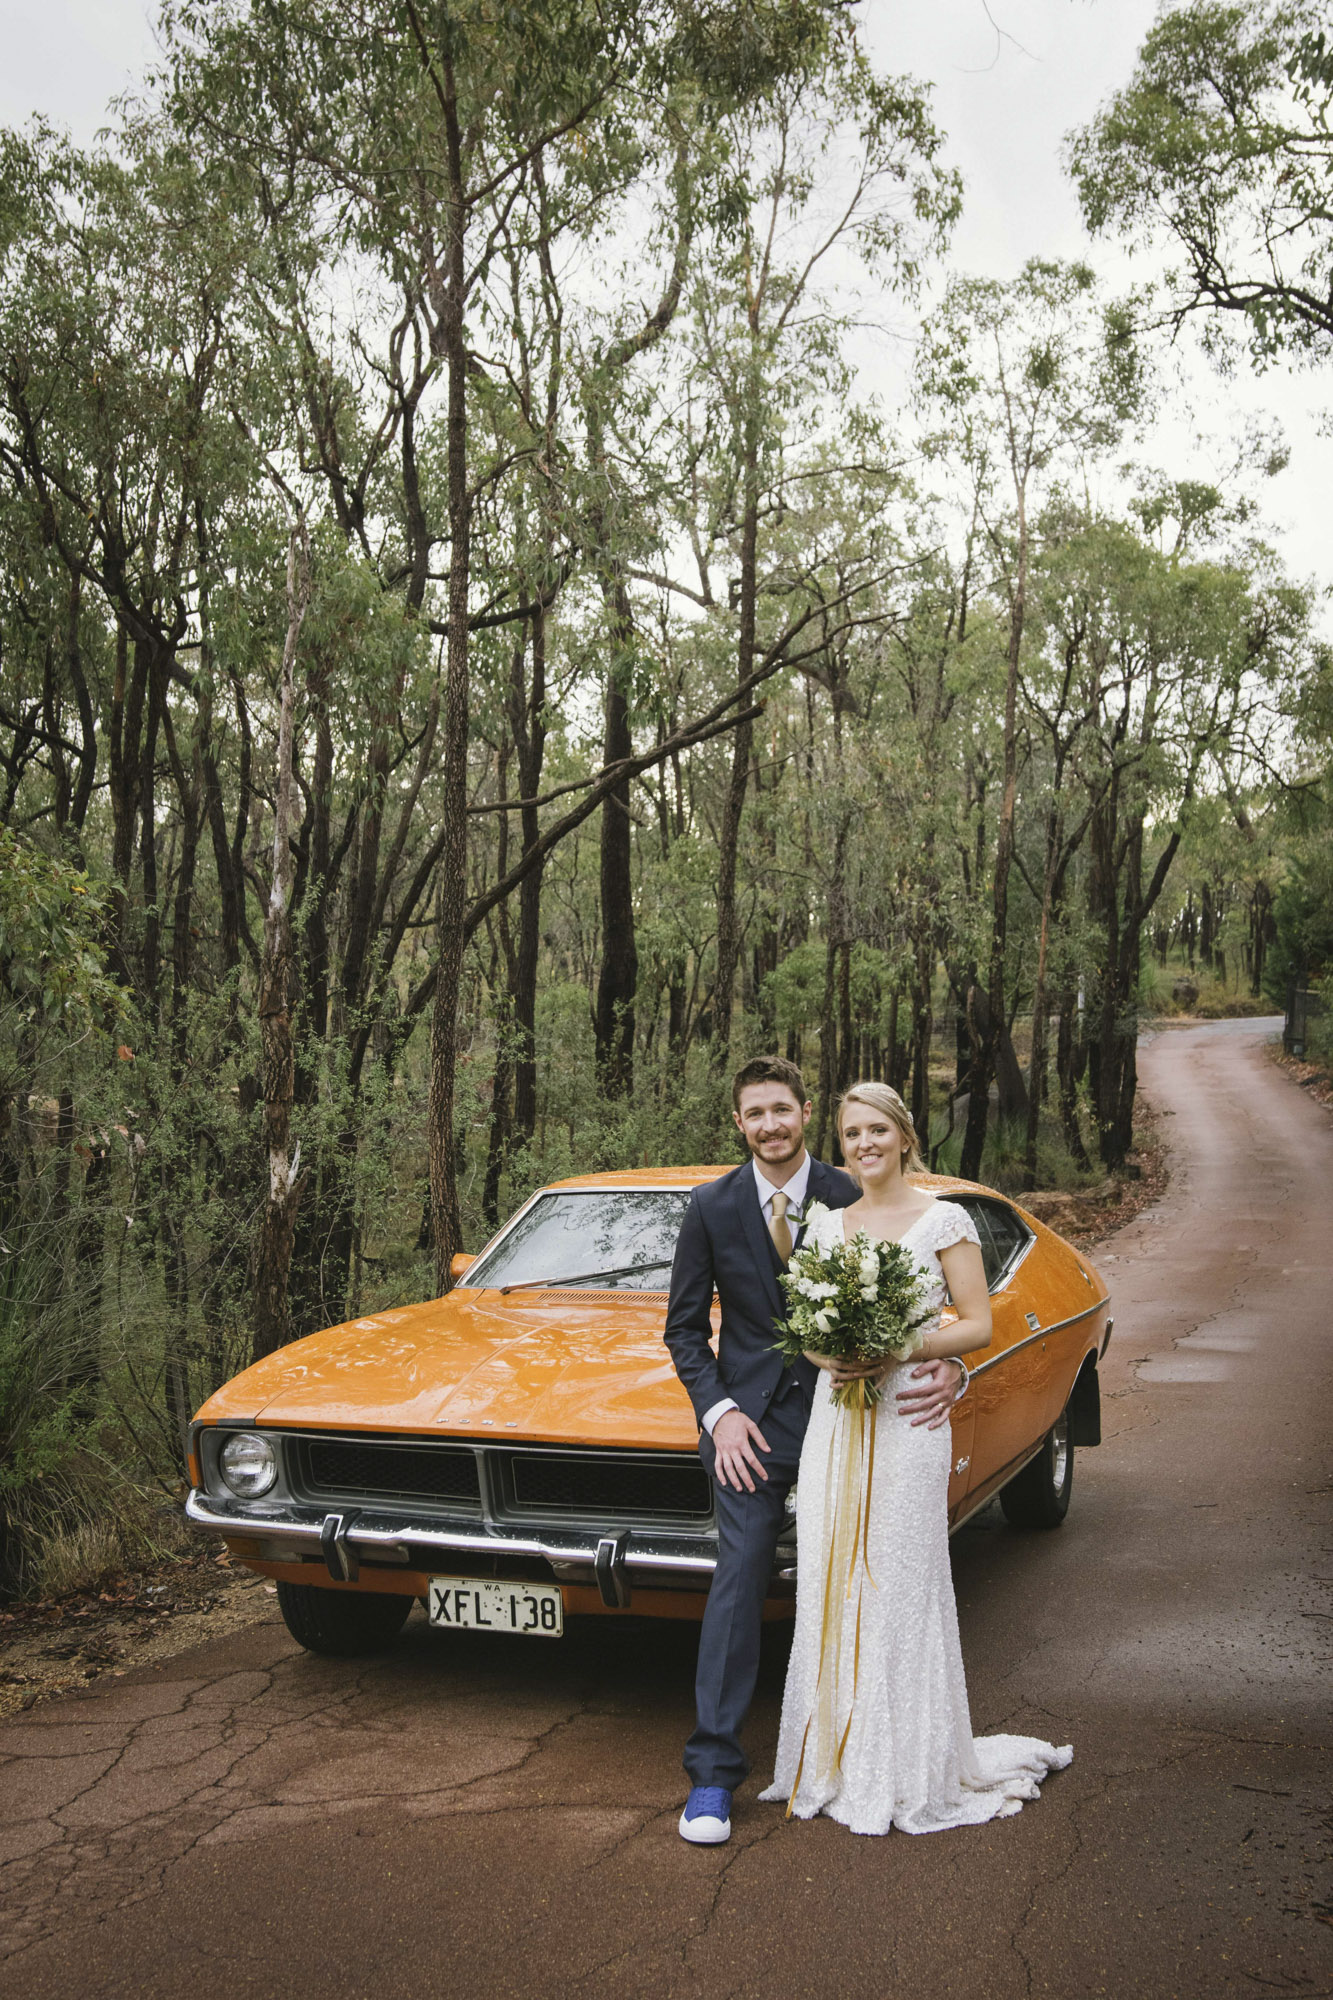 Angie-Roe-Photography-Wedding-Perth-Northam-Wheatbelt-Country-Rural (2).jpg